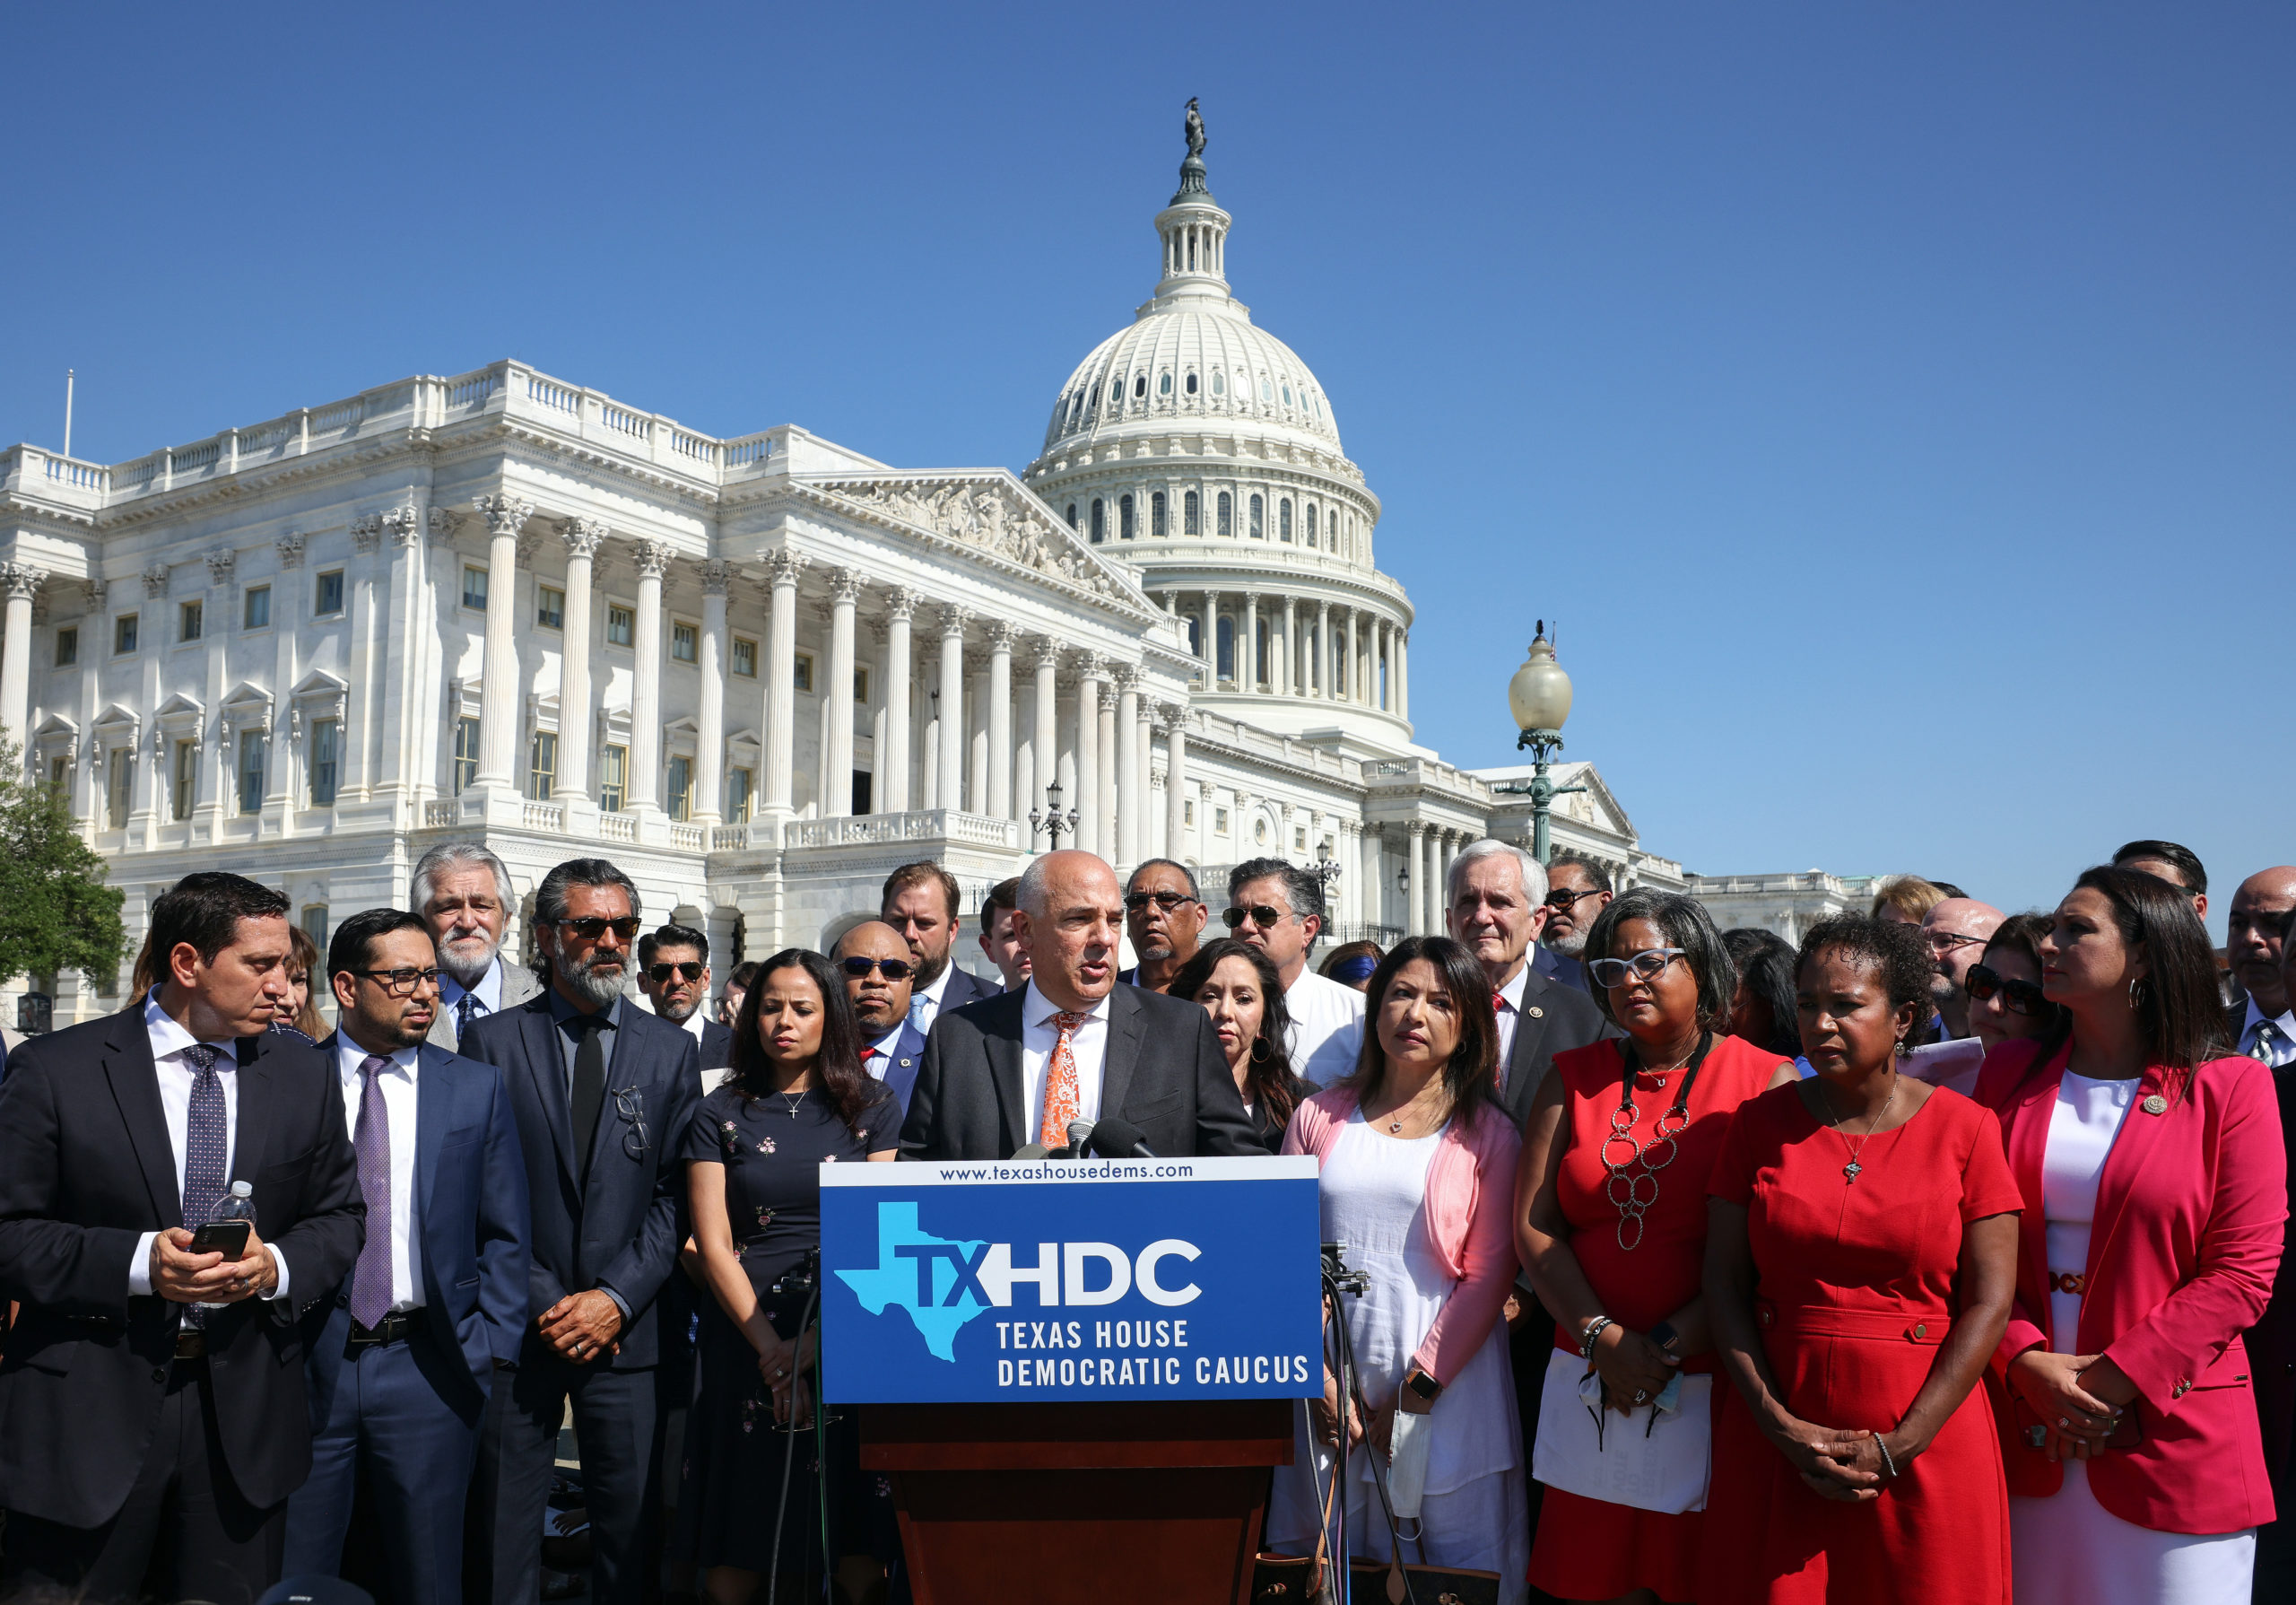 Texas state House Democrats speak outside the U.S. Capitol on July 13 after more than sixty of them fled their home state overnight. (Kevin Dietsch/Getty Images)